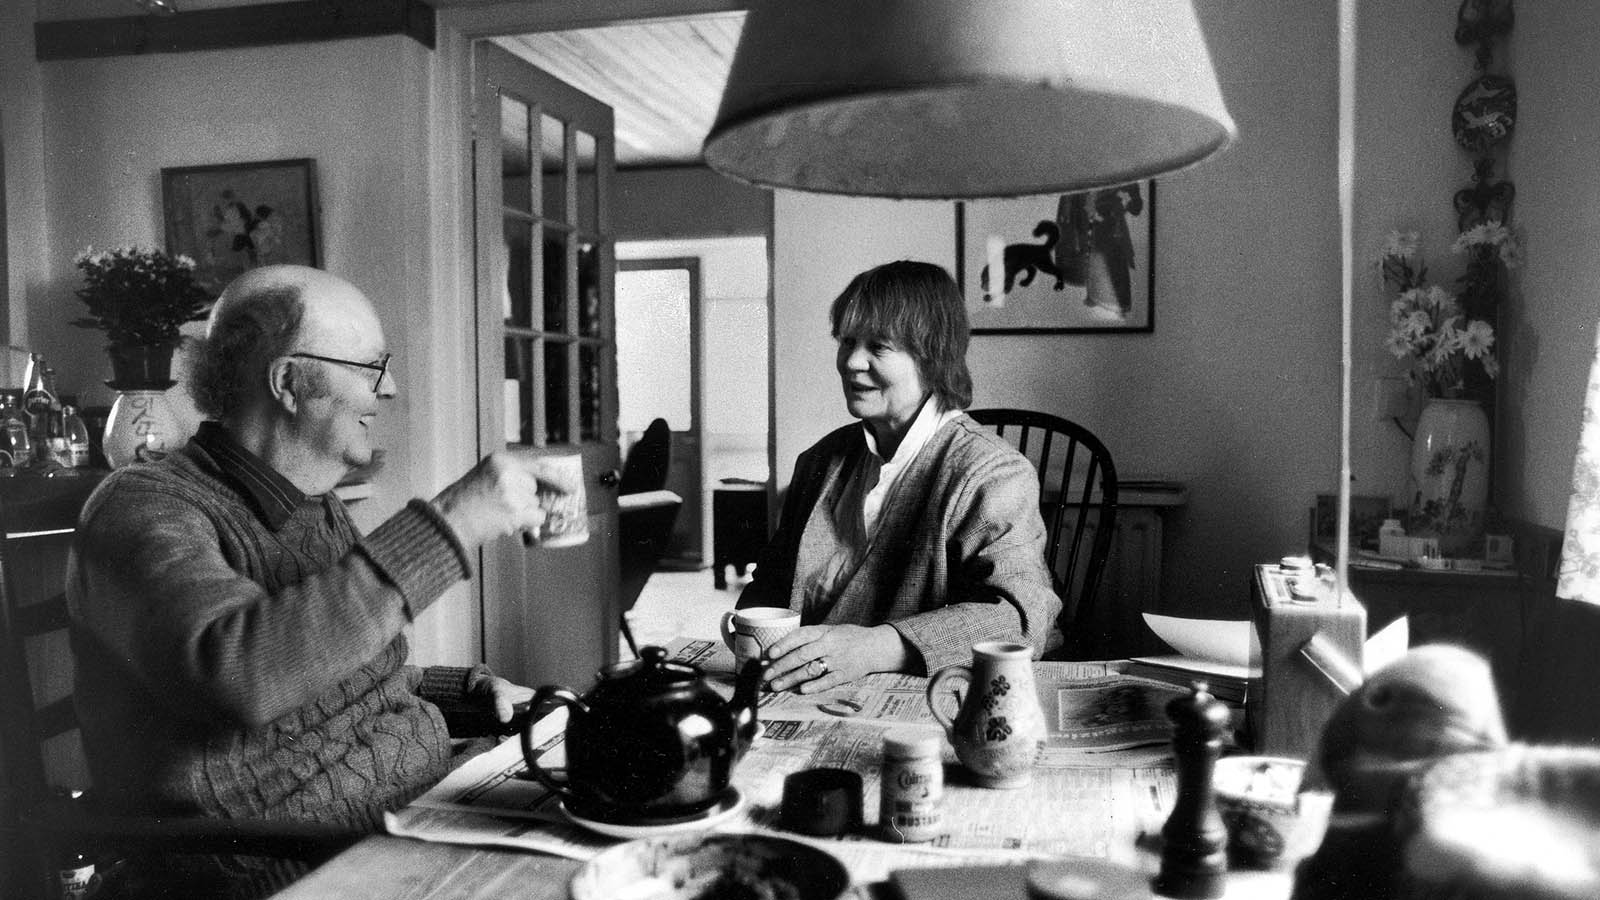 Author Dame Iris Murdoch (right) breakfasting at home with husband John Bayley, Don of St. Catherine's College, in May 1986. (Terry Smith/The LIFE Images Collection/Getty Images)